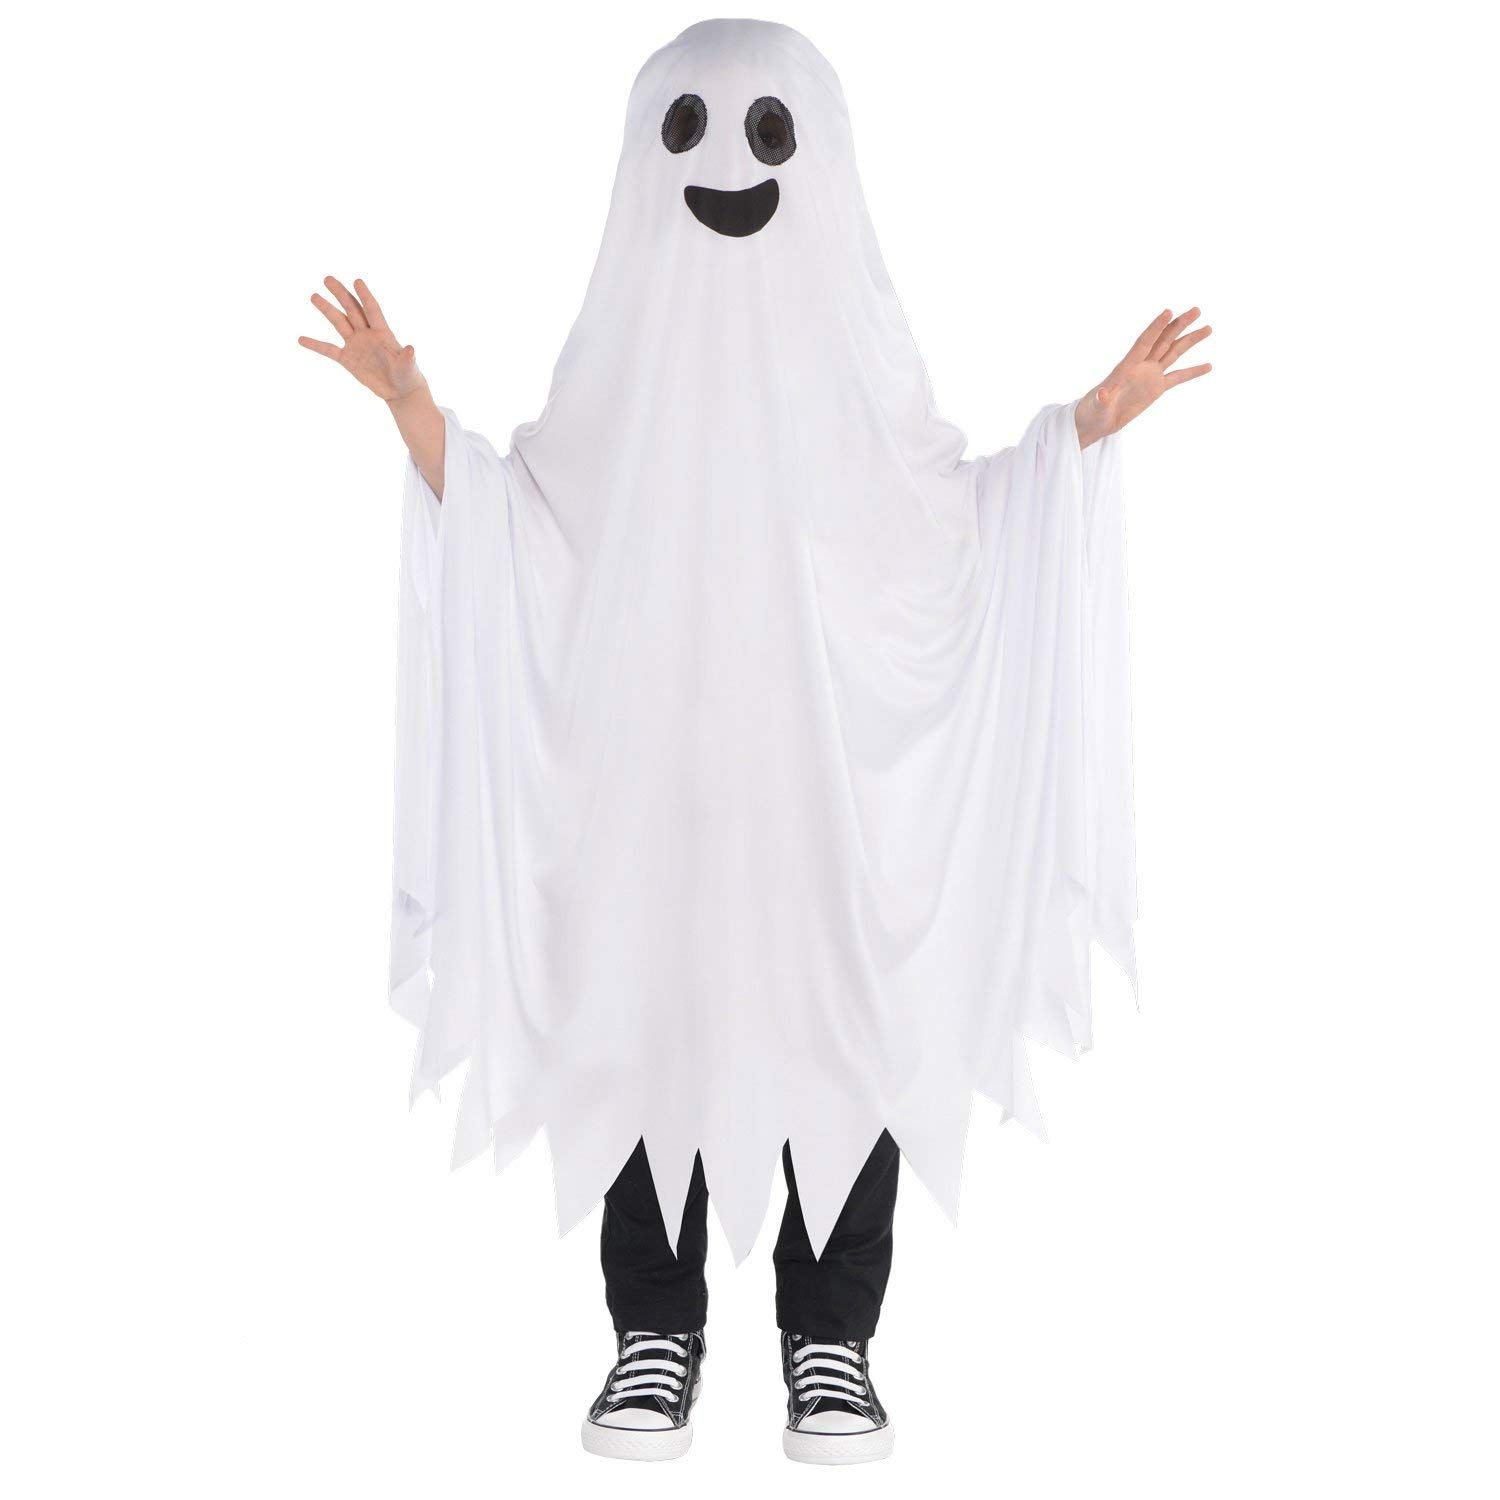 Crazy Ghost Costume Halloween Spirit Ghoul Fancy Dress Outfit Adult one size